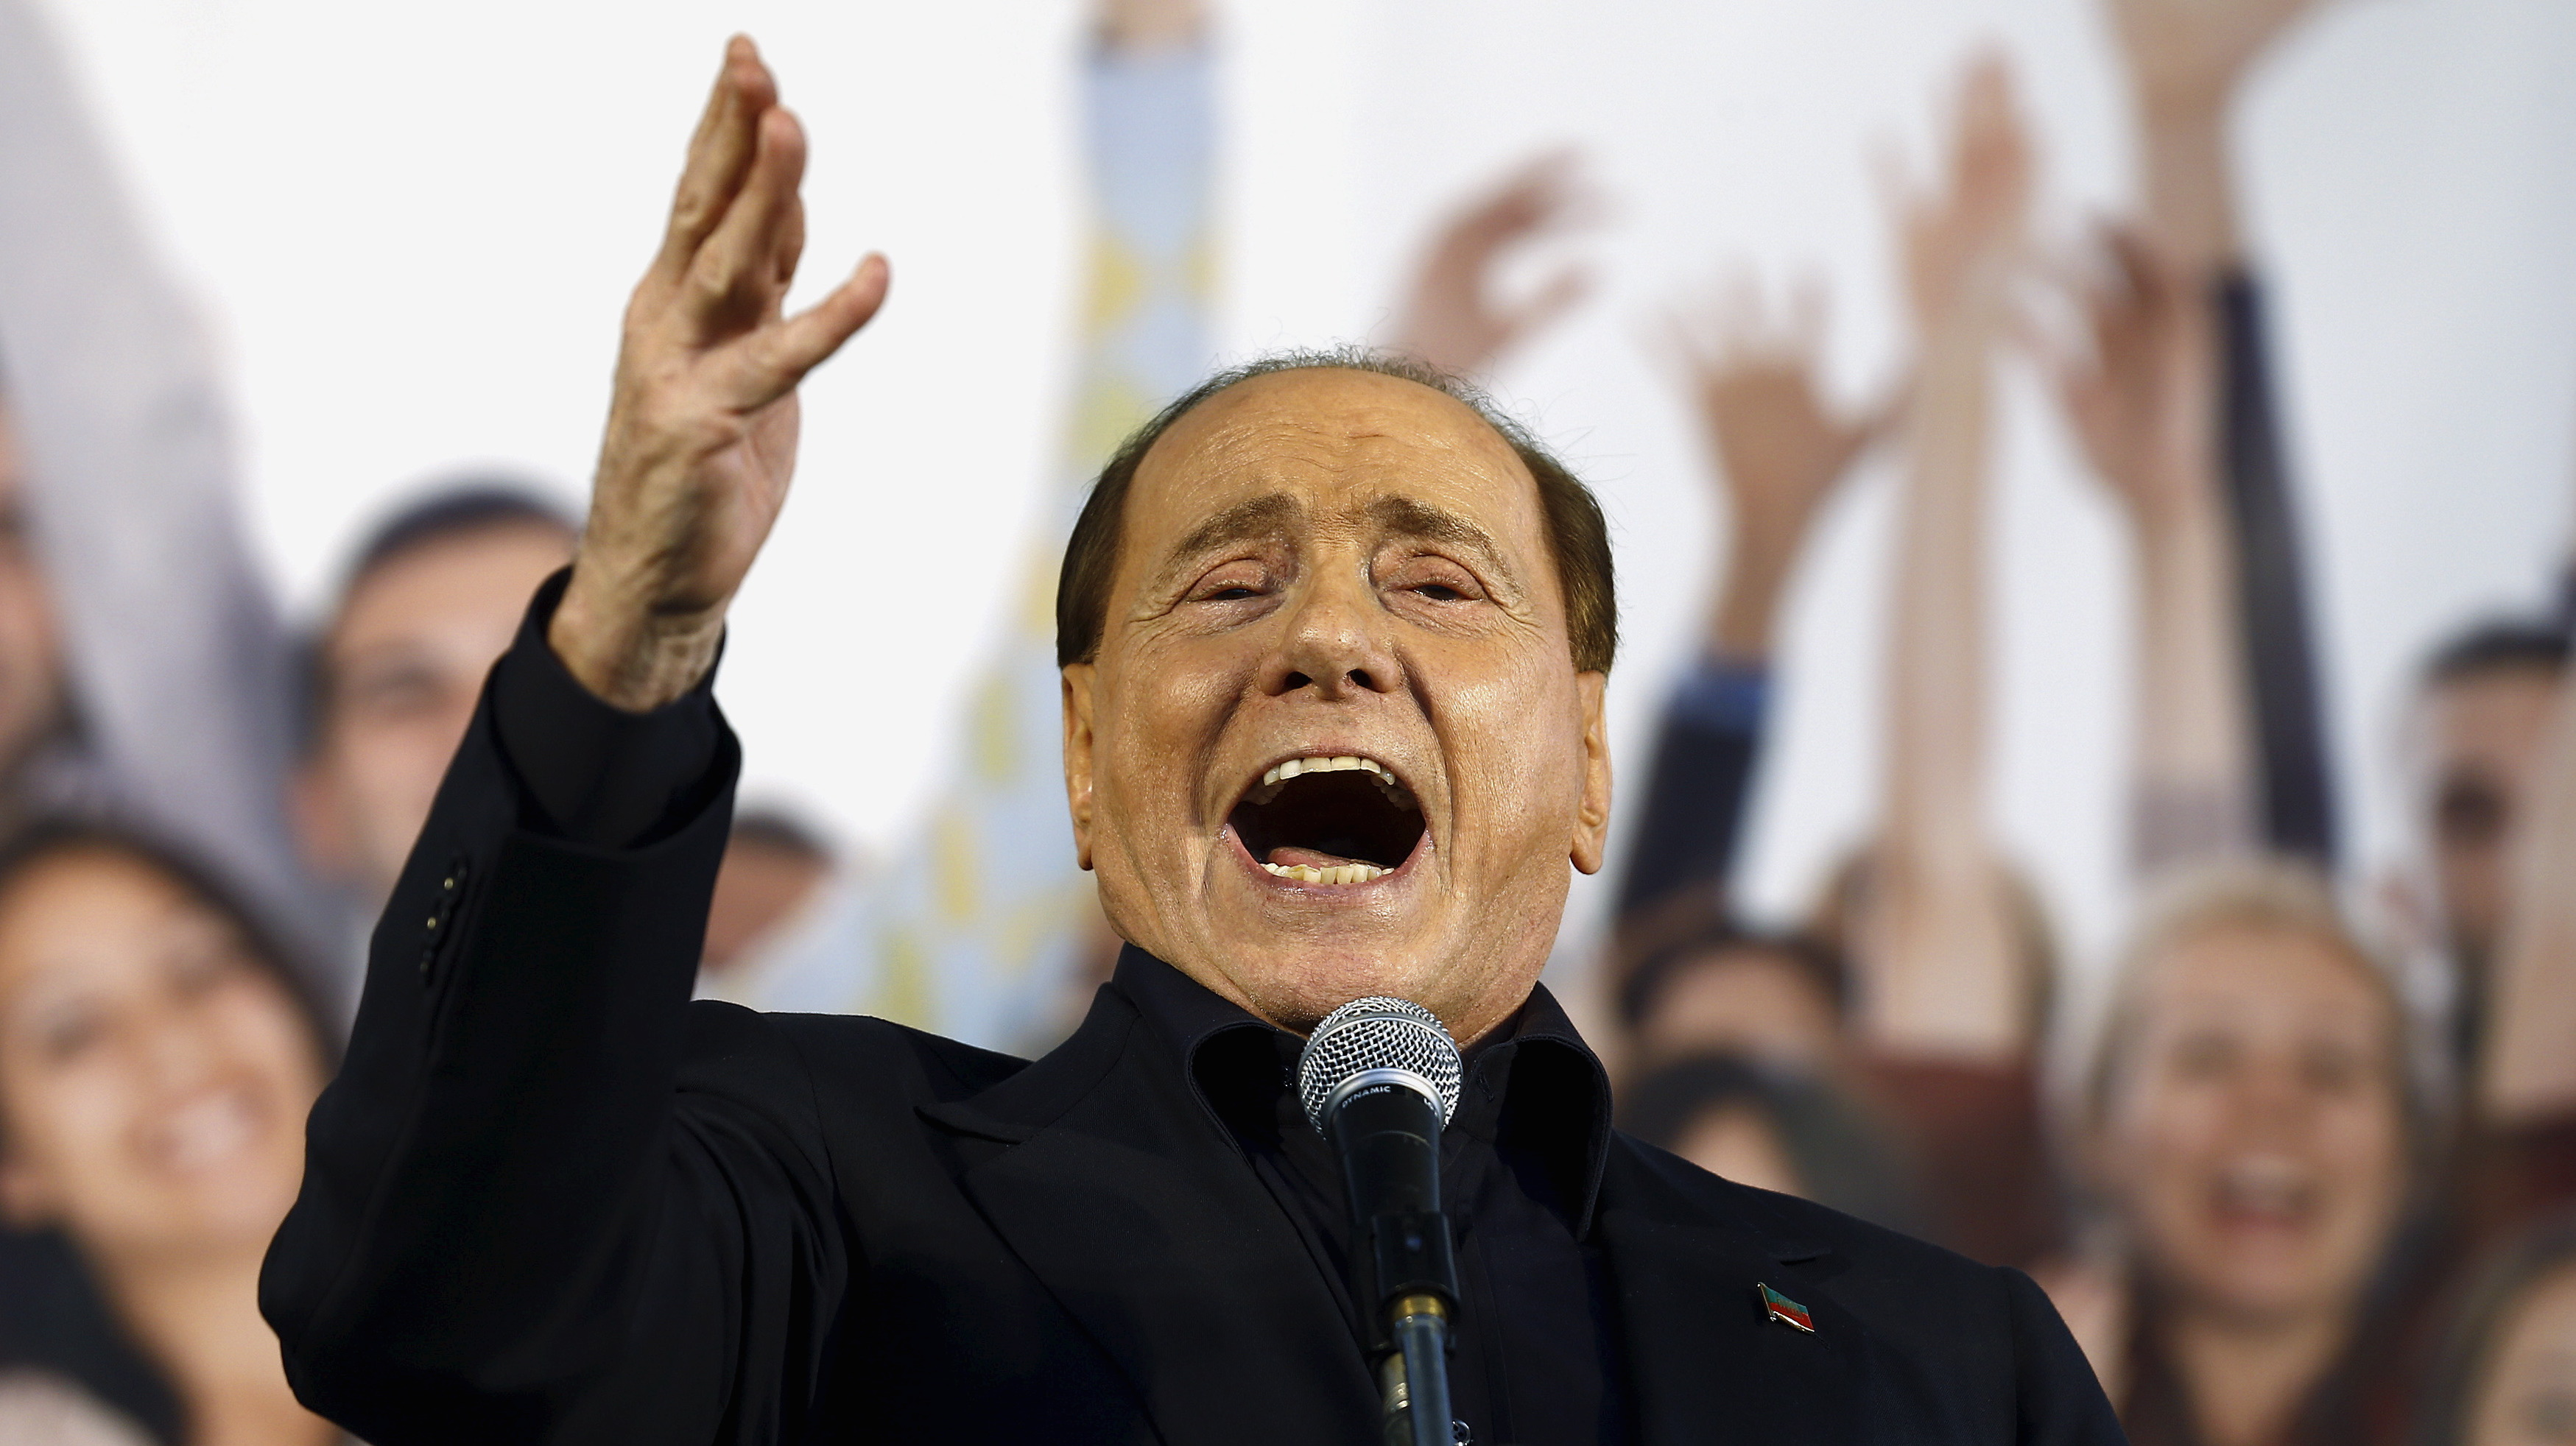 Forza Italia party (PDL) leader Silvio Berlusconi speaks during Northern League rally in Bologna, central Italy, November 8, 2015. The Northern League, Italy's third largest political force, is planning a major rally to voice its opposition to the government of Prime Minister Matteo Renzi.   REUTERS/Stefano Rellandini